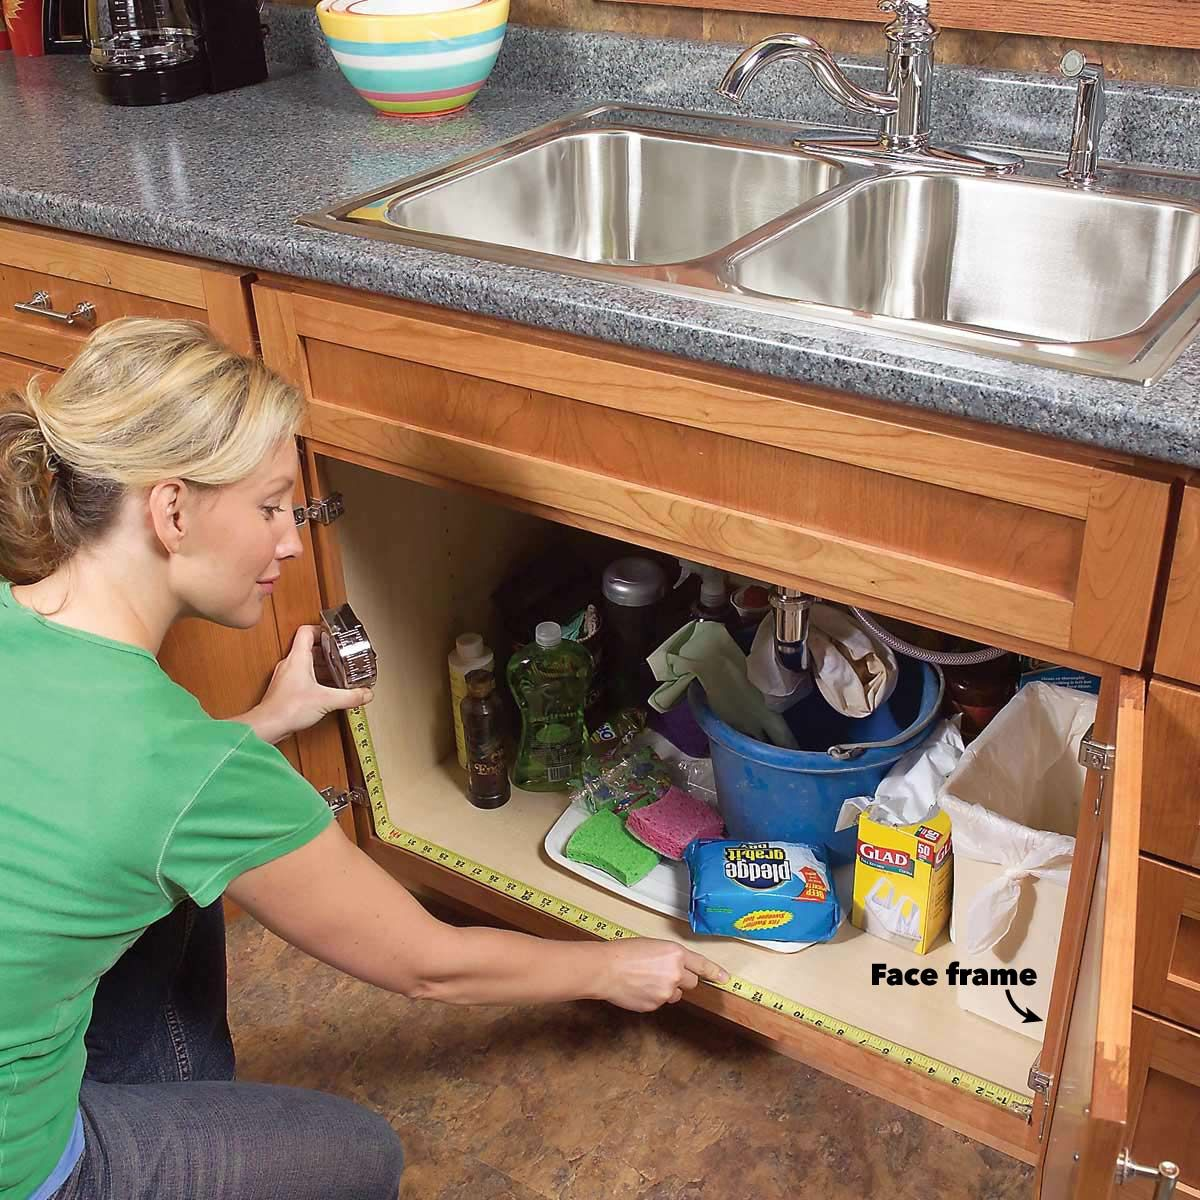 Kitchen Cabinet Storage Solutions Diy Pull Out Shelves The Family Handyman Kitchen Sink Storage Diy Pull Out Shelves Kitchen Cabinet Storage